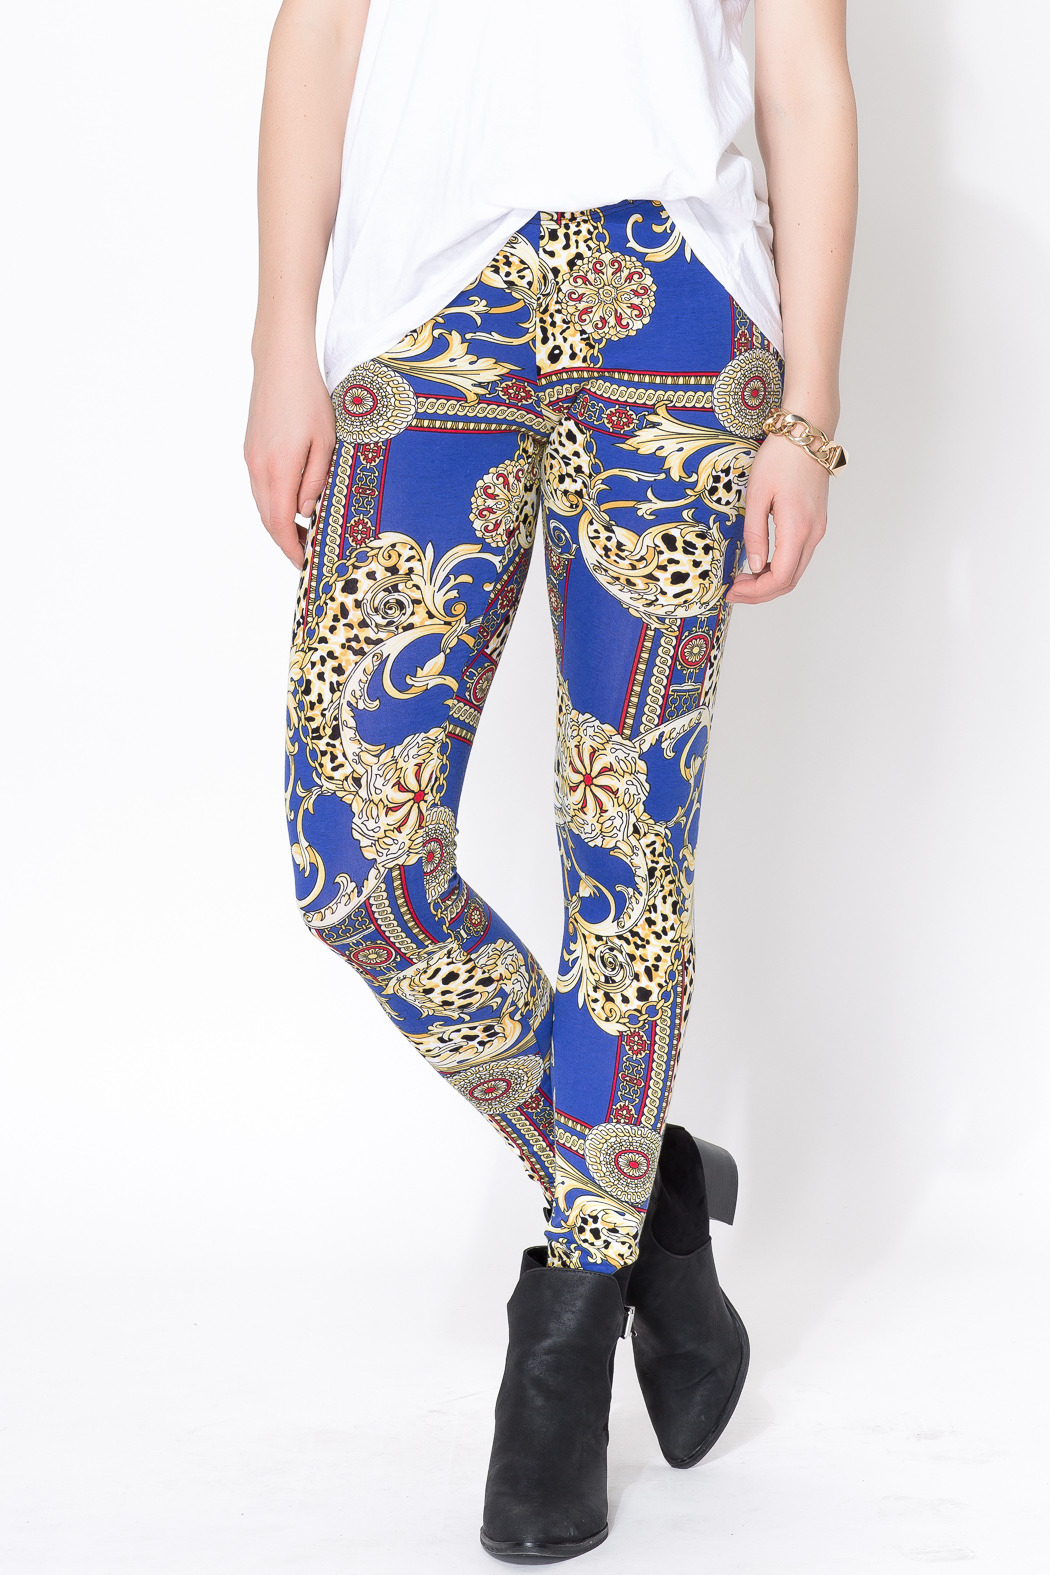 53020cbdf916c See You Monday Versace Inspired Legging from Coronado by BE Styled ...